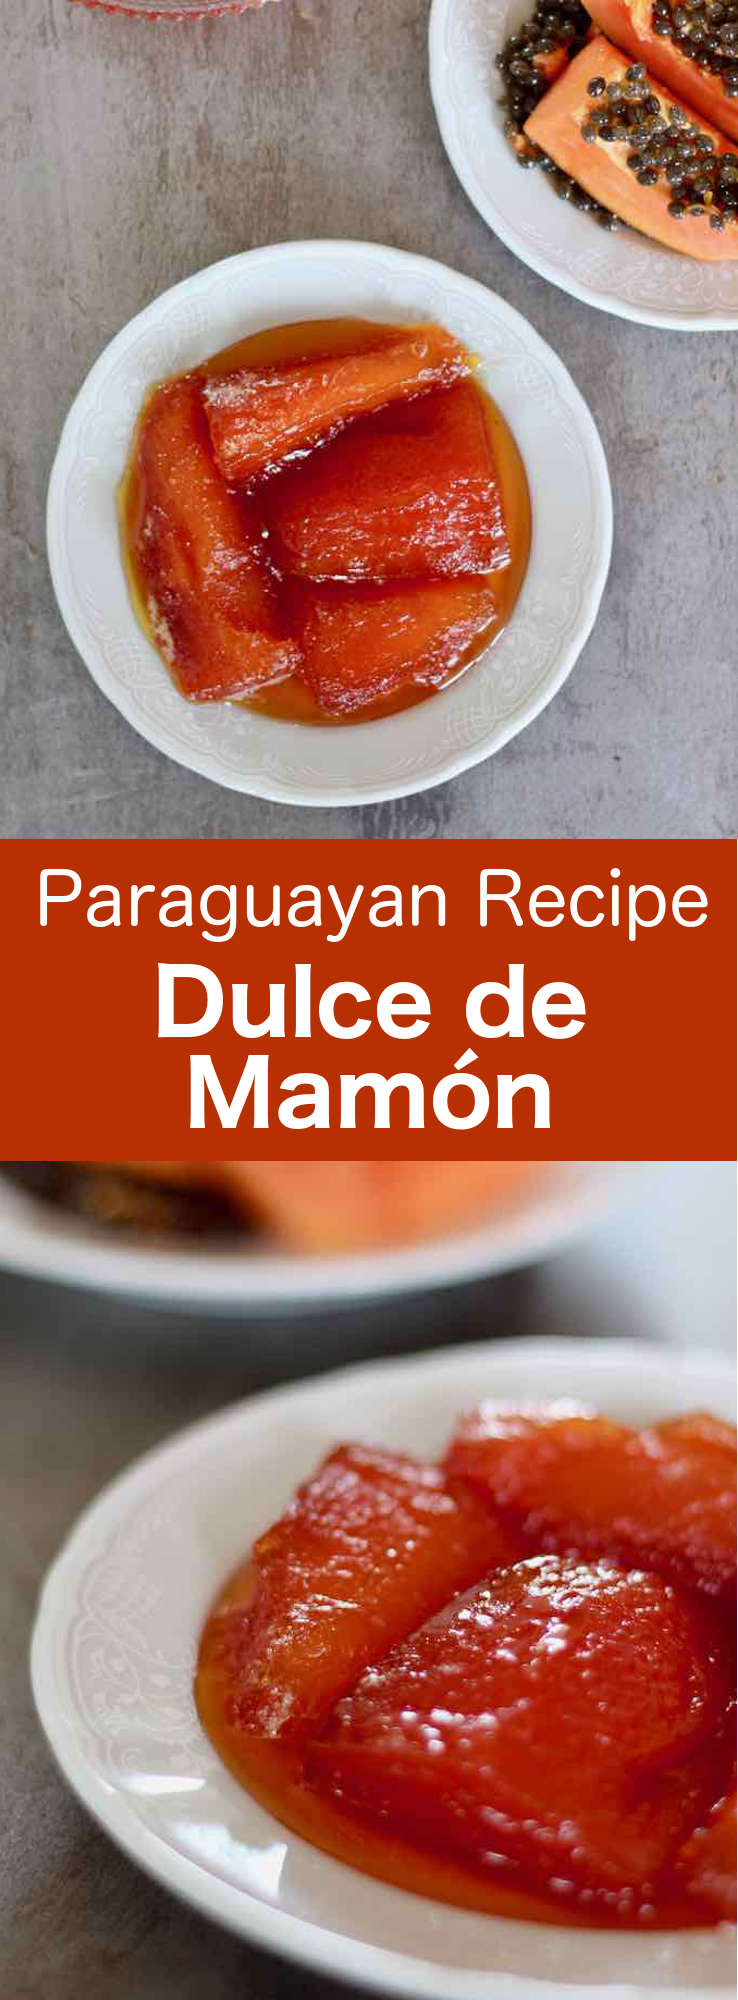 Dulce de mamón is a traditional dessert of Guarani origin, emblematic of Paraguay and Argentina cuisine that is prepared with papaya and sugar syrup. #Paraguay #ParaguayanCuisine #ParaguayanRecipe #LatinAmericanCuisine #LatinAmericanRecipe #SouthAmericanCuisine #SouthAmericanRecipe #WorldFlavors #196flavors